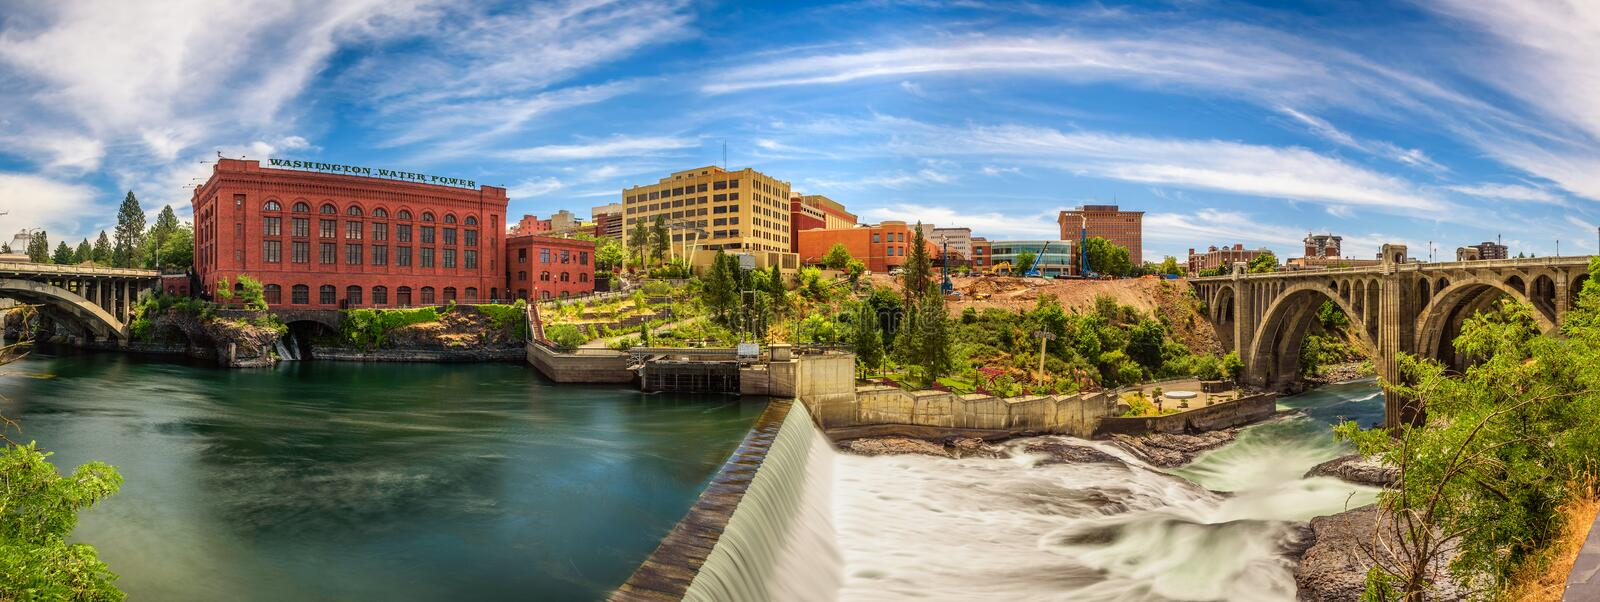 Washington Water Power-de bouw en Monroe Street Bridge in Spokane royalty-vrije stock fotografie